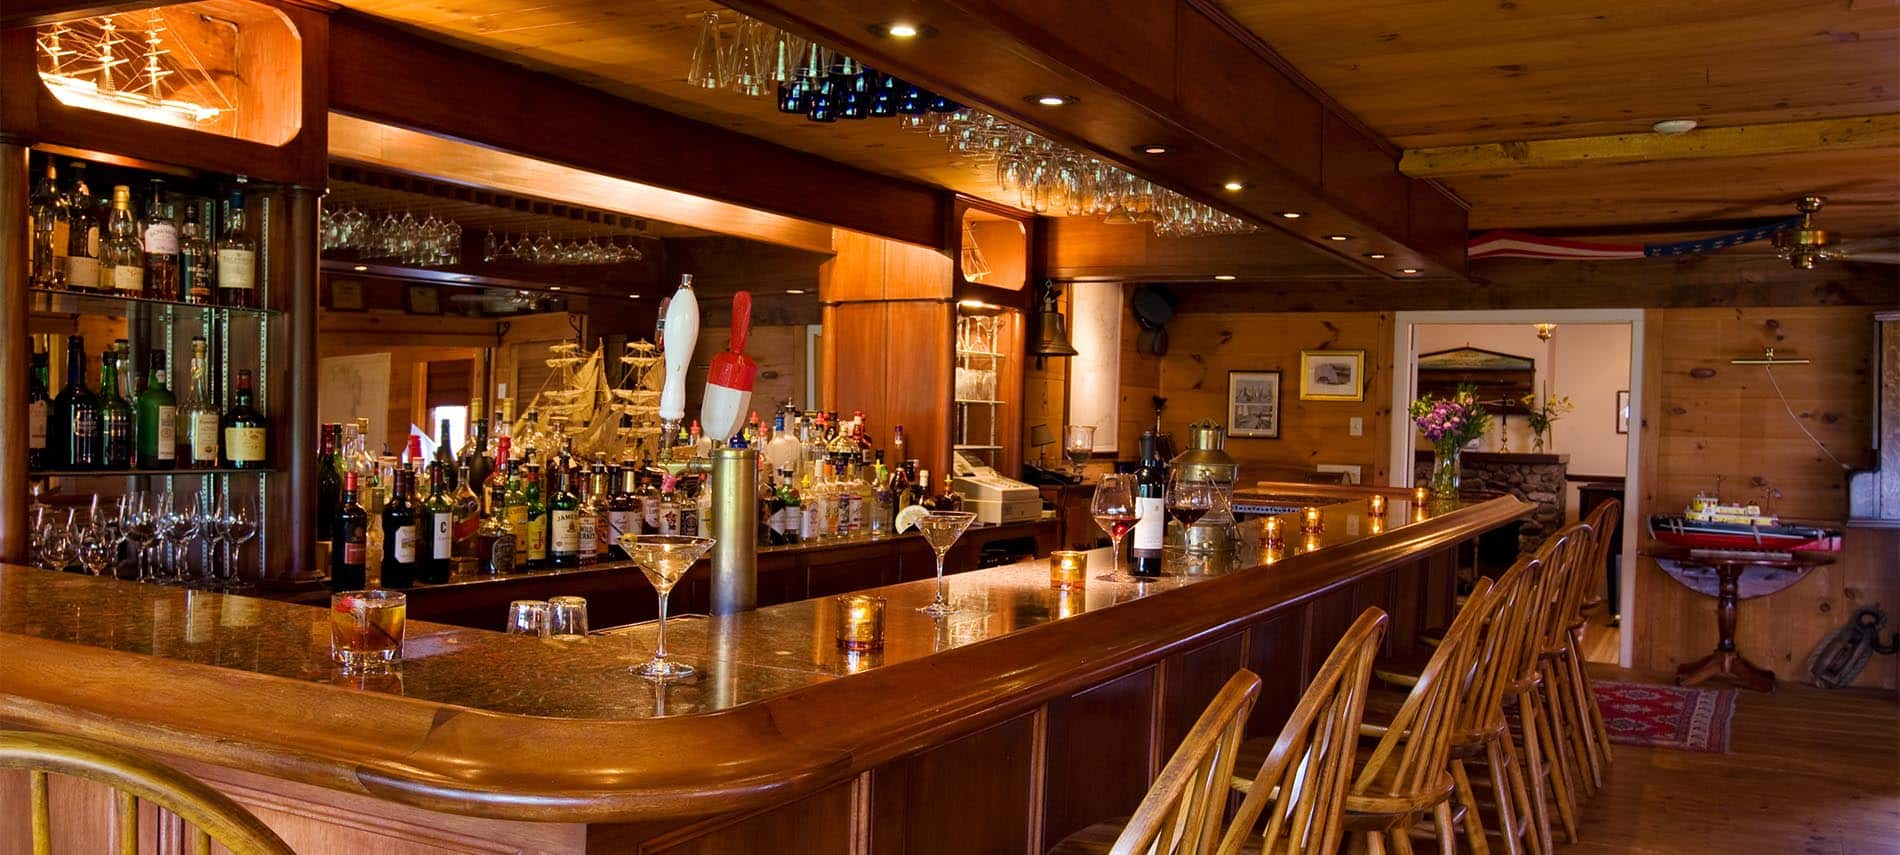 Oak bar with several wooden chairs, glasses and various liquers behind the counter.